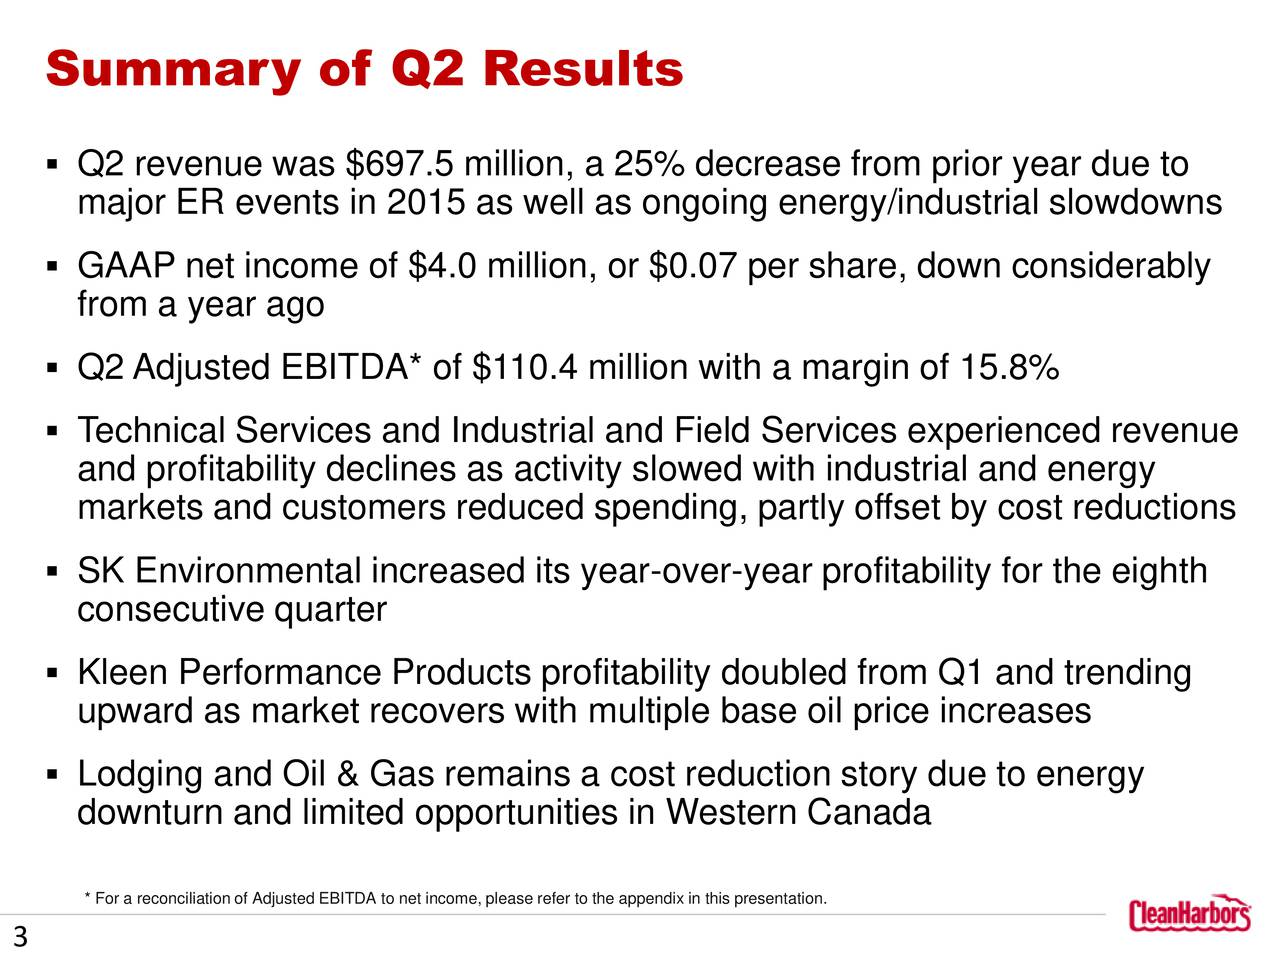 Q2 revenue was $697.5 million, a 25% decrease from prior year due to major ER events in 2015 as well as ongoing energy/industrial slowdowns GAAP net income of $4.0 million, or $0.07 per share, down considerably from a year ago Q2 Adjusted EBITDA* of $110.4 million with a margin of 15.8% Technical Services and Industrial and Field Services experienced revenue and profitability declines as activity slowed with industrial and energy markets and customers reduced spending, partly offset by cost reductions SK Environmental increased its year-over-year profitability for the eighth consecutive quarter Kleen Performance Products profitability doubled from Q1 and trending upward as market recovers with multiple base oil price increases Lodging and Oil & Gas remains a cost reduction story due to energy downturn and limited opportunities in Western Canada * For a reconciliation of Adjusted EBITDA to net income, please refer to the appendix in this presentation.